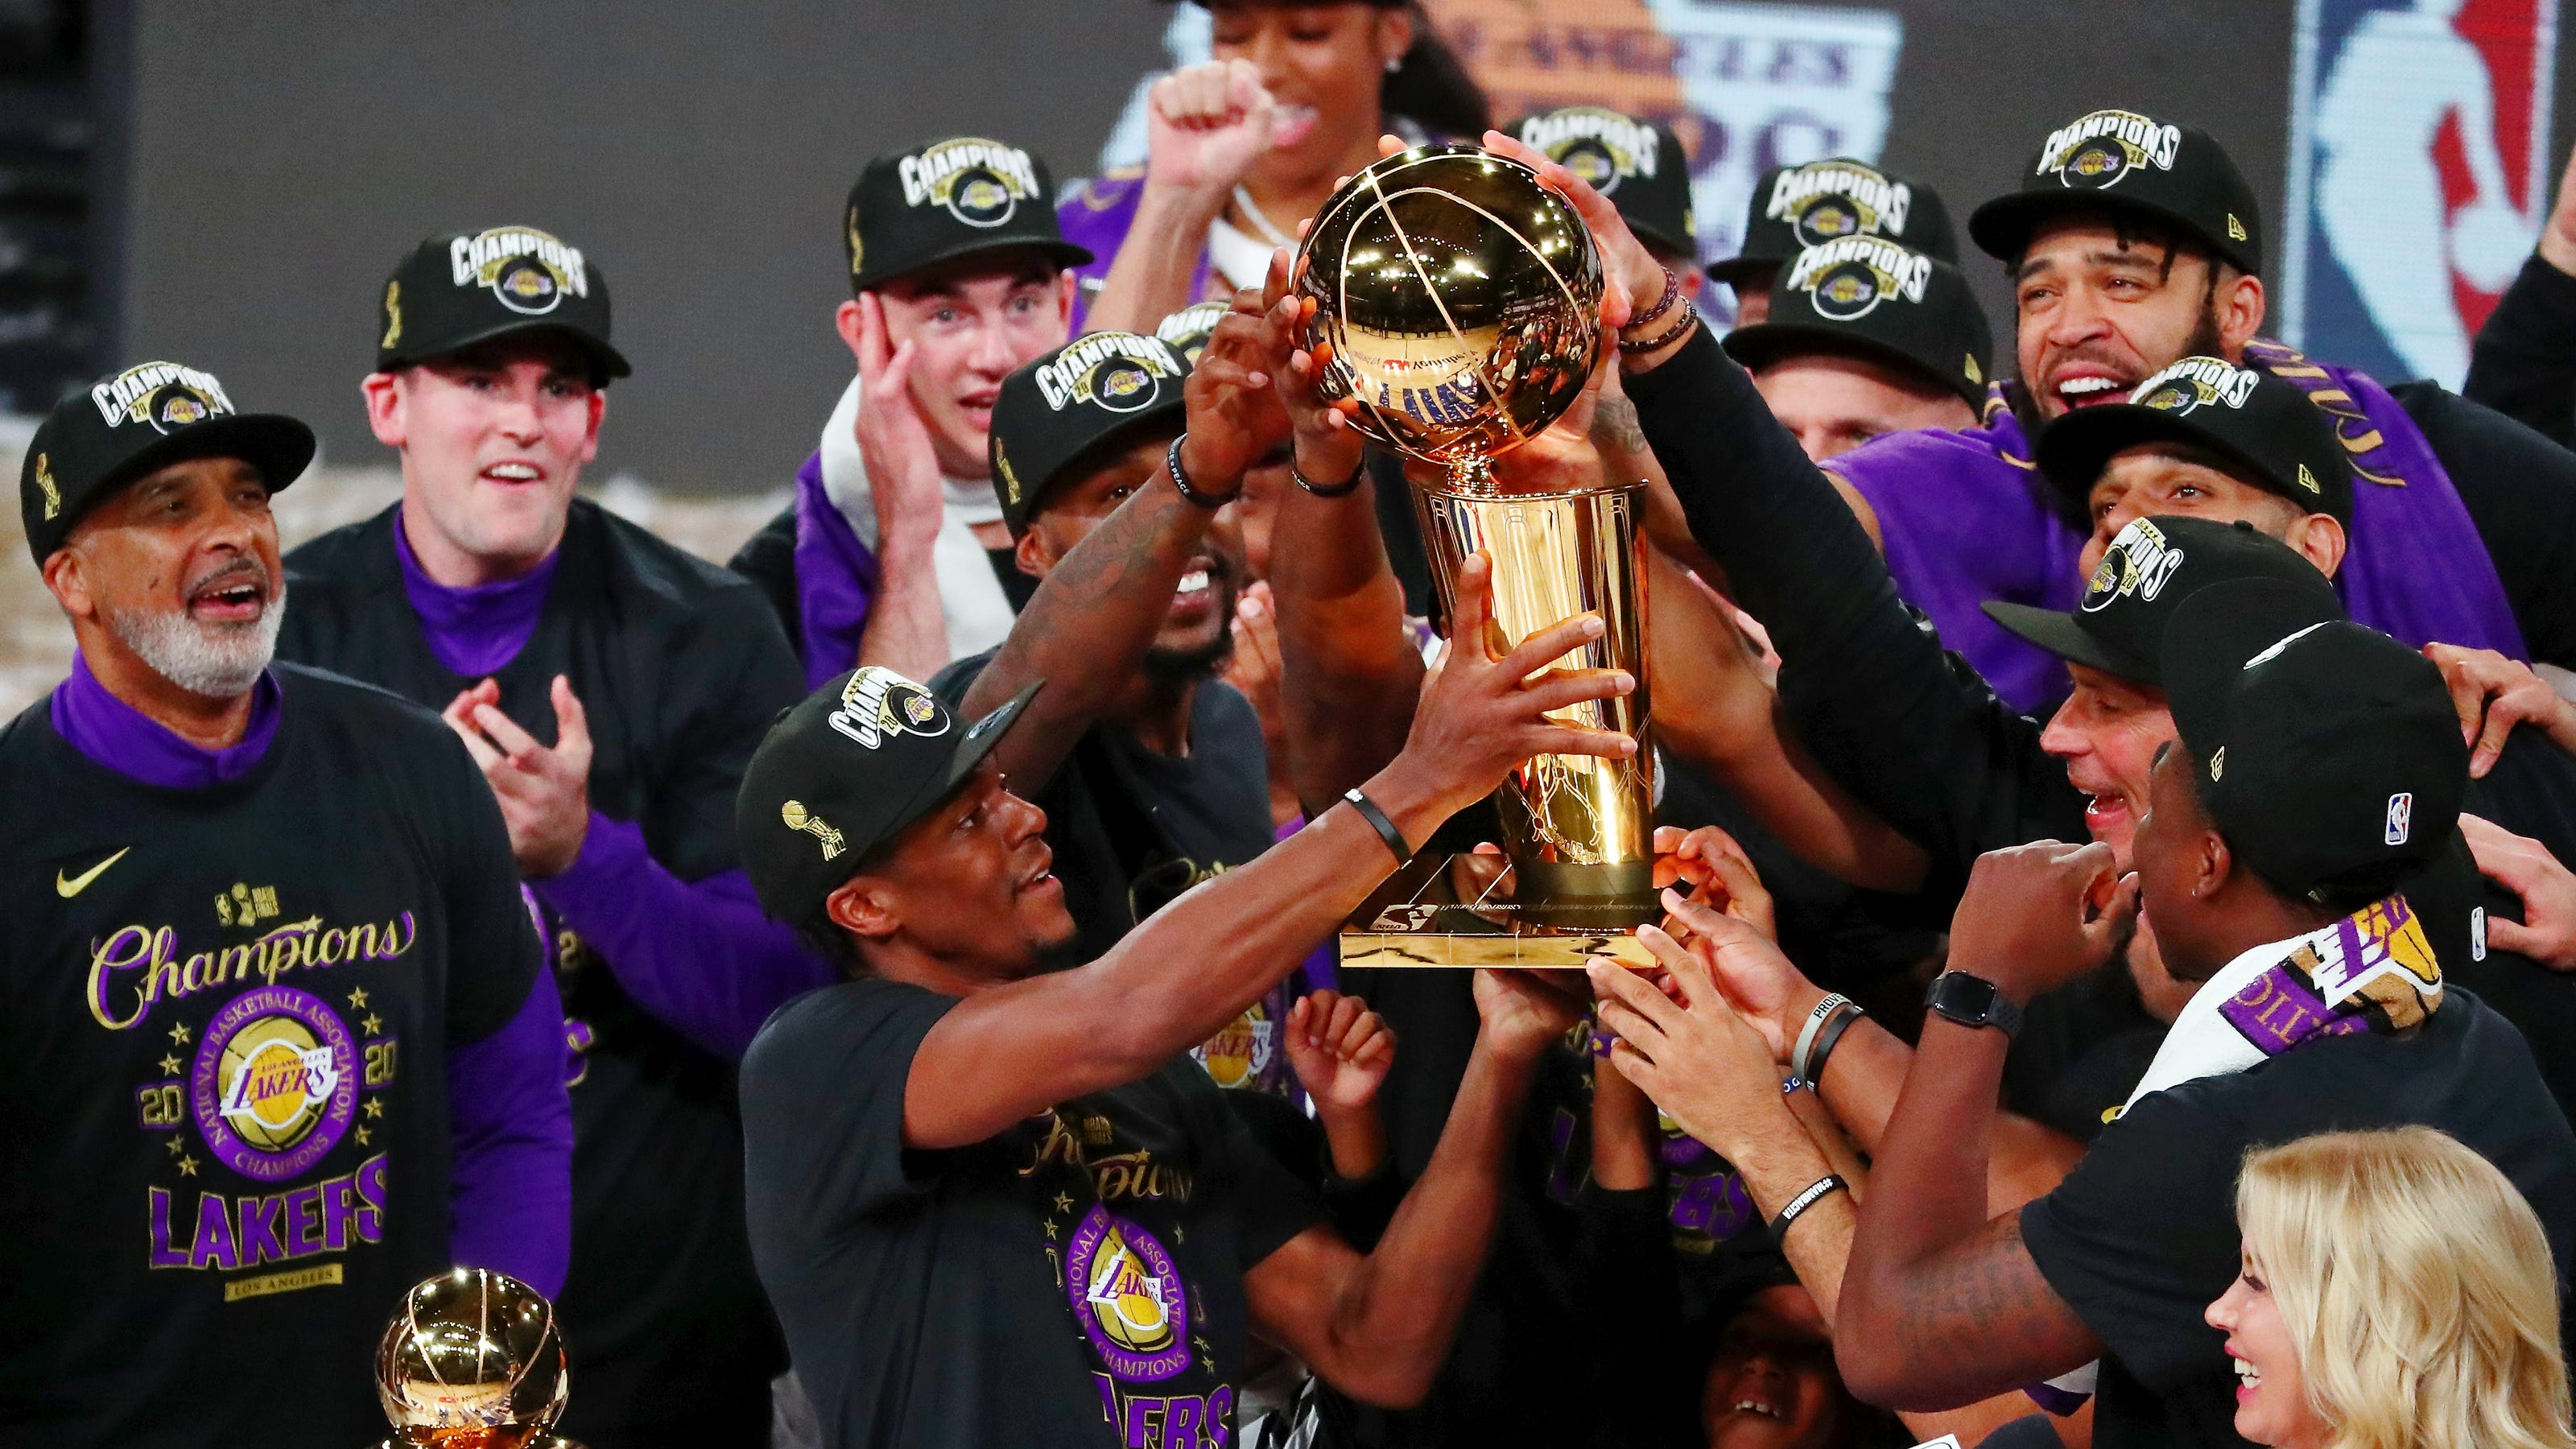 Los Angeles Lakers to delay making White House visit to celebrate 2020 NBA title